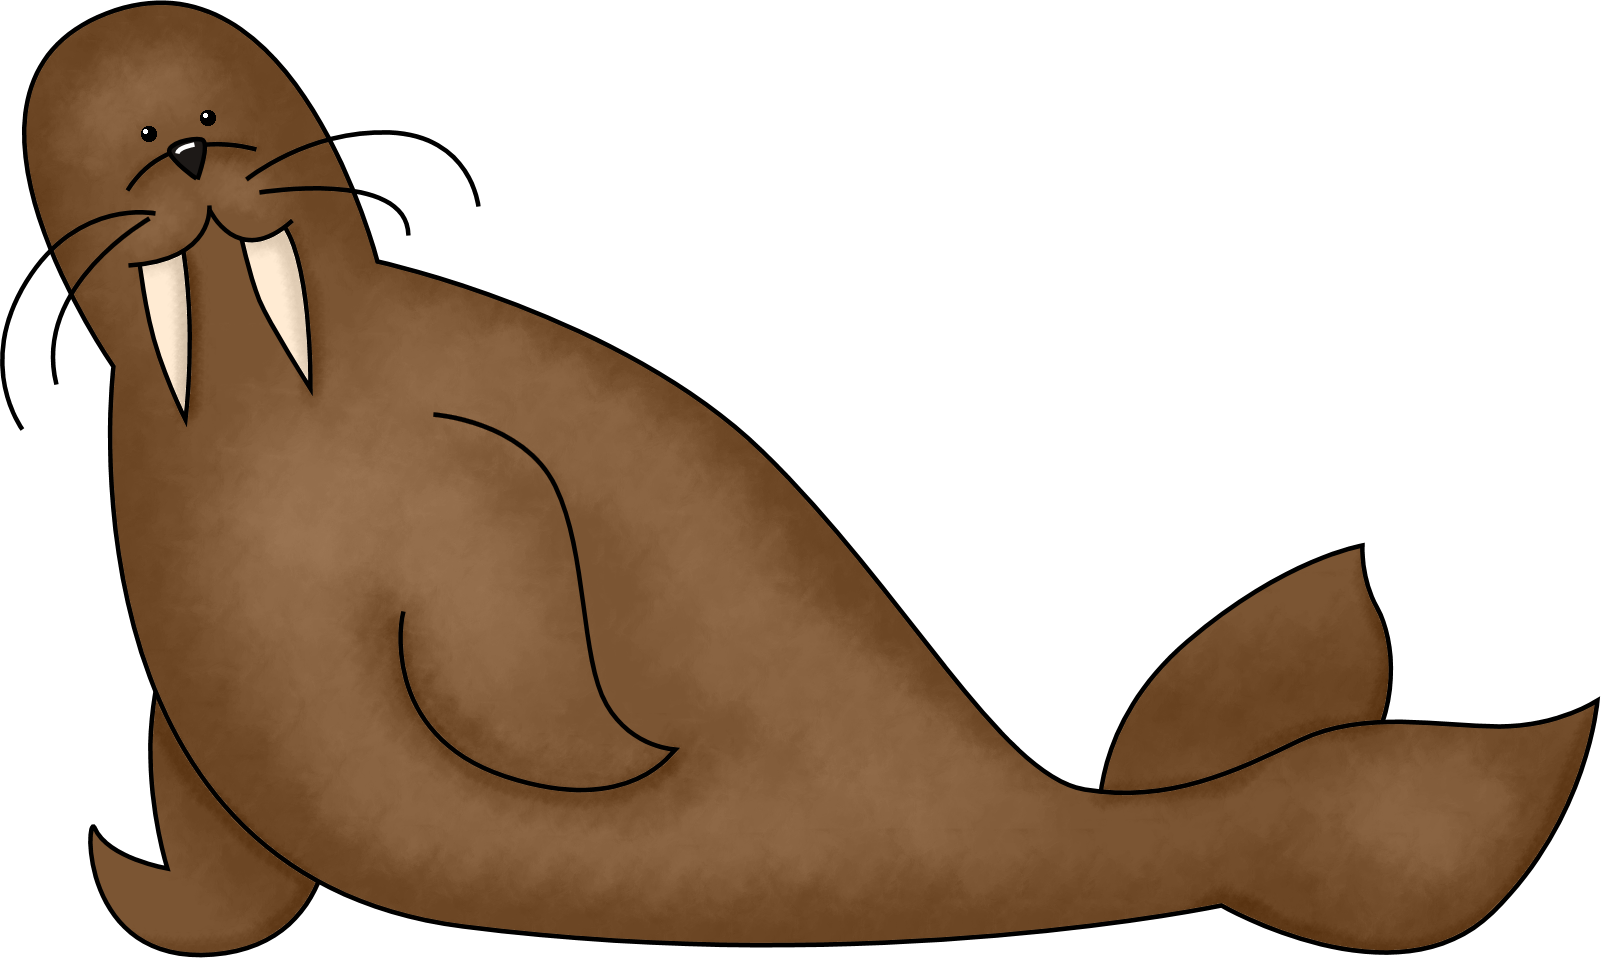 Walrus clipart outline. Free cliparts download clip